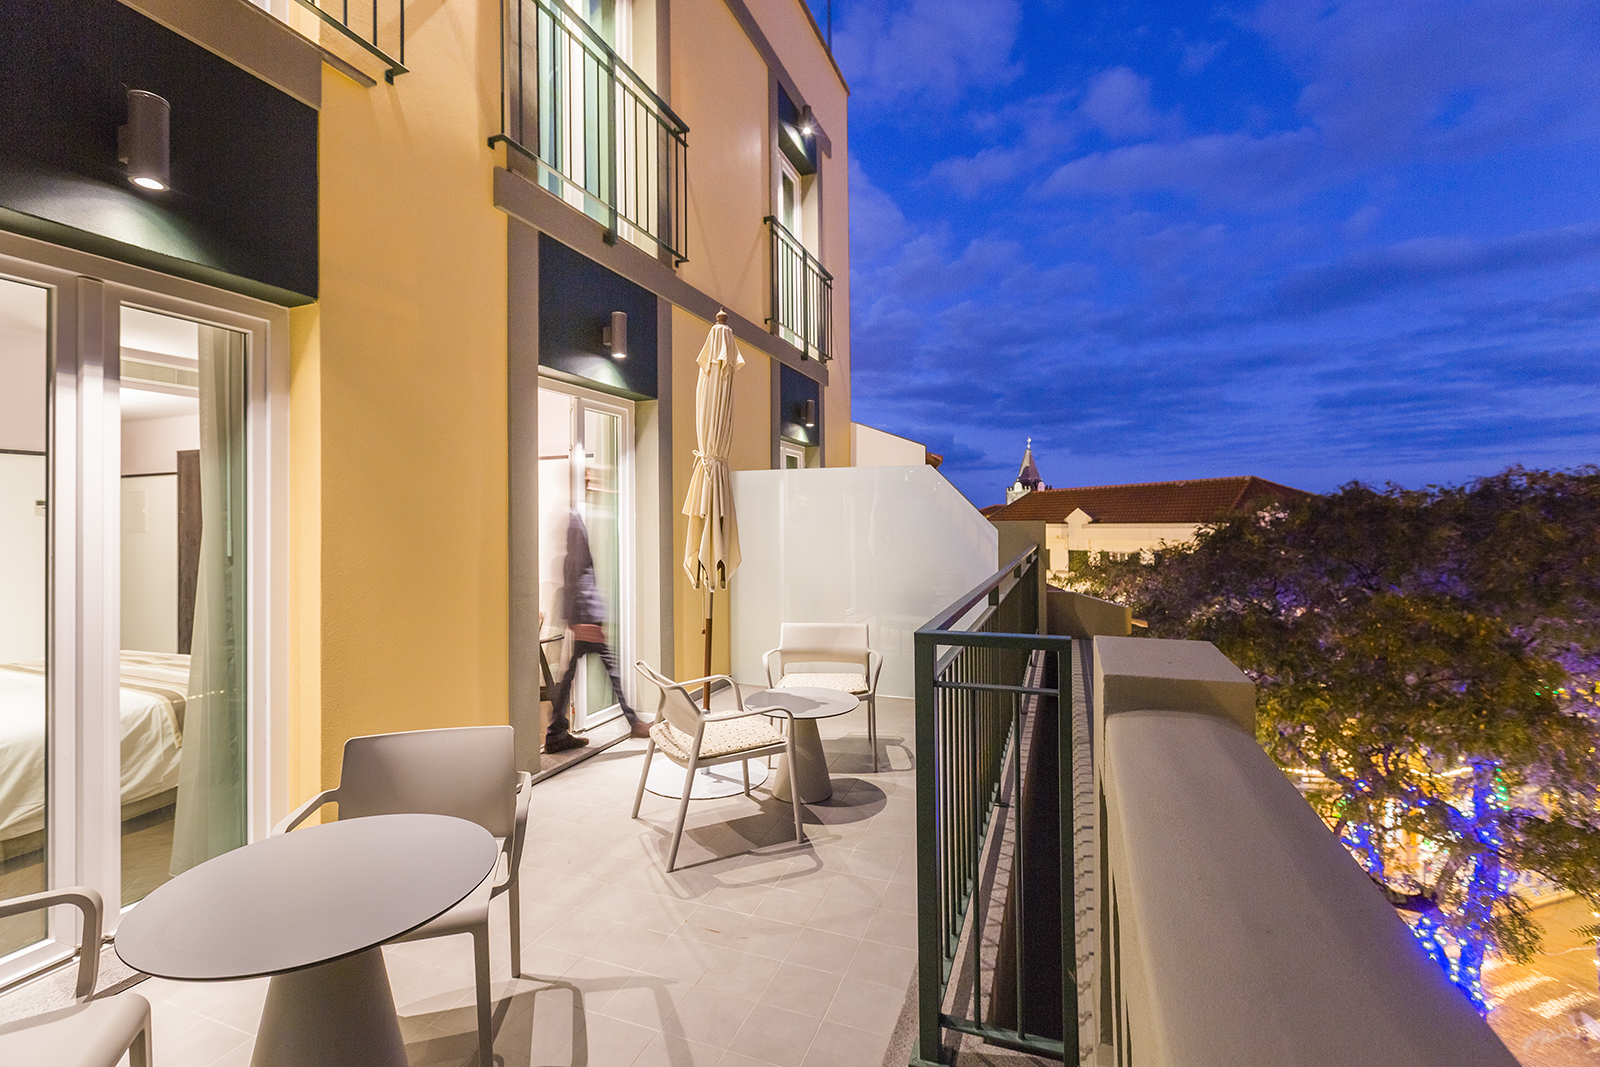 Quartos suites castanheiro boutique hotel for Boutique hotel 01